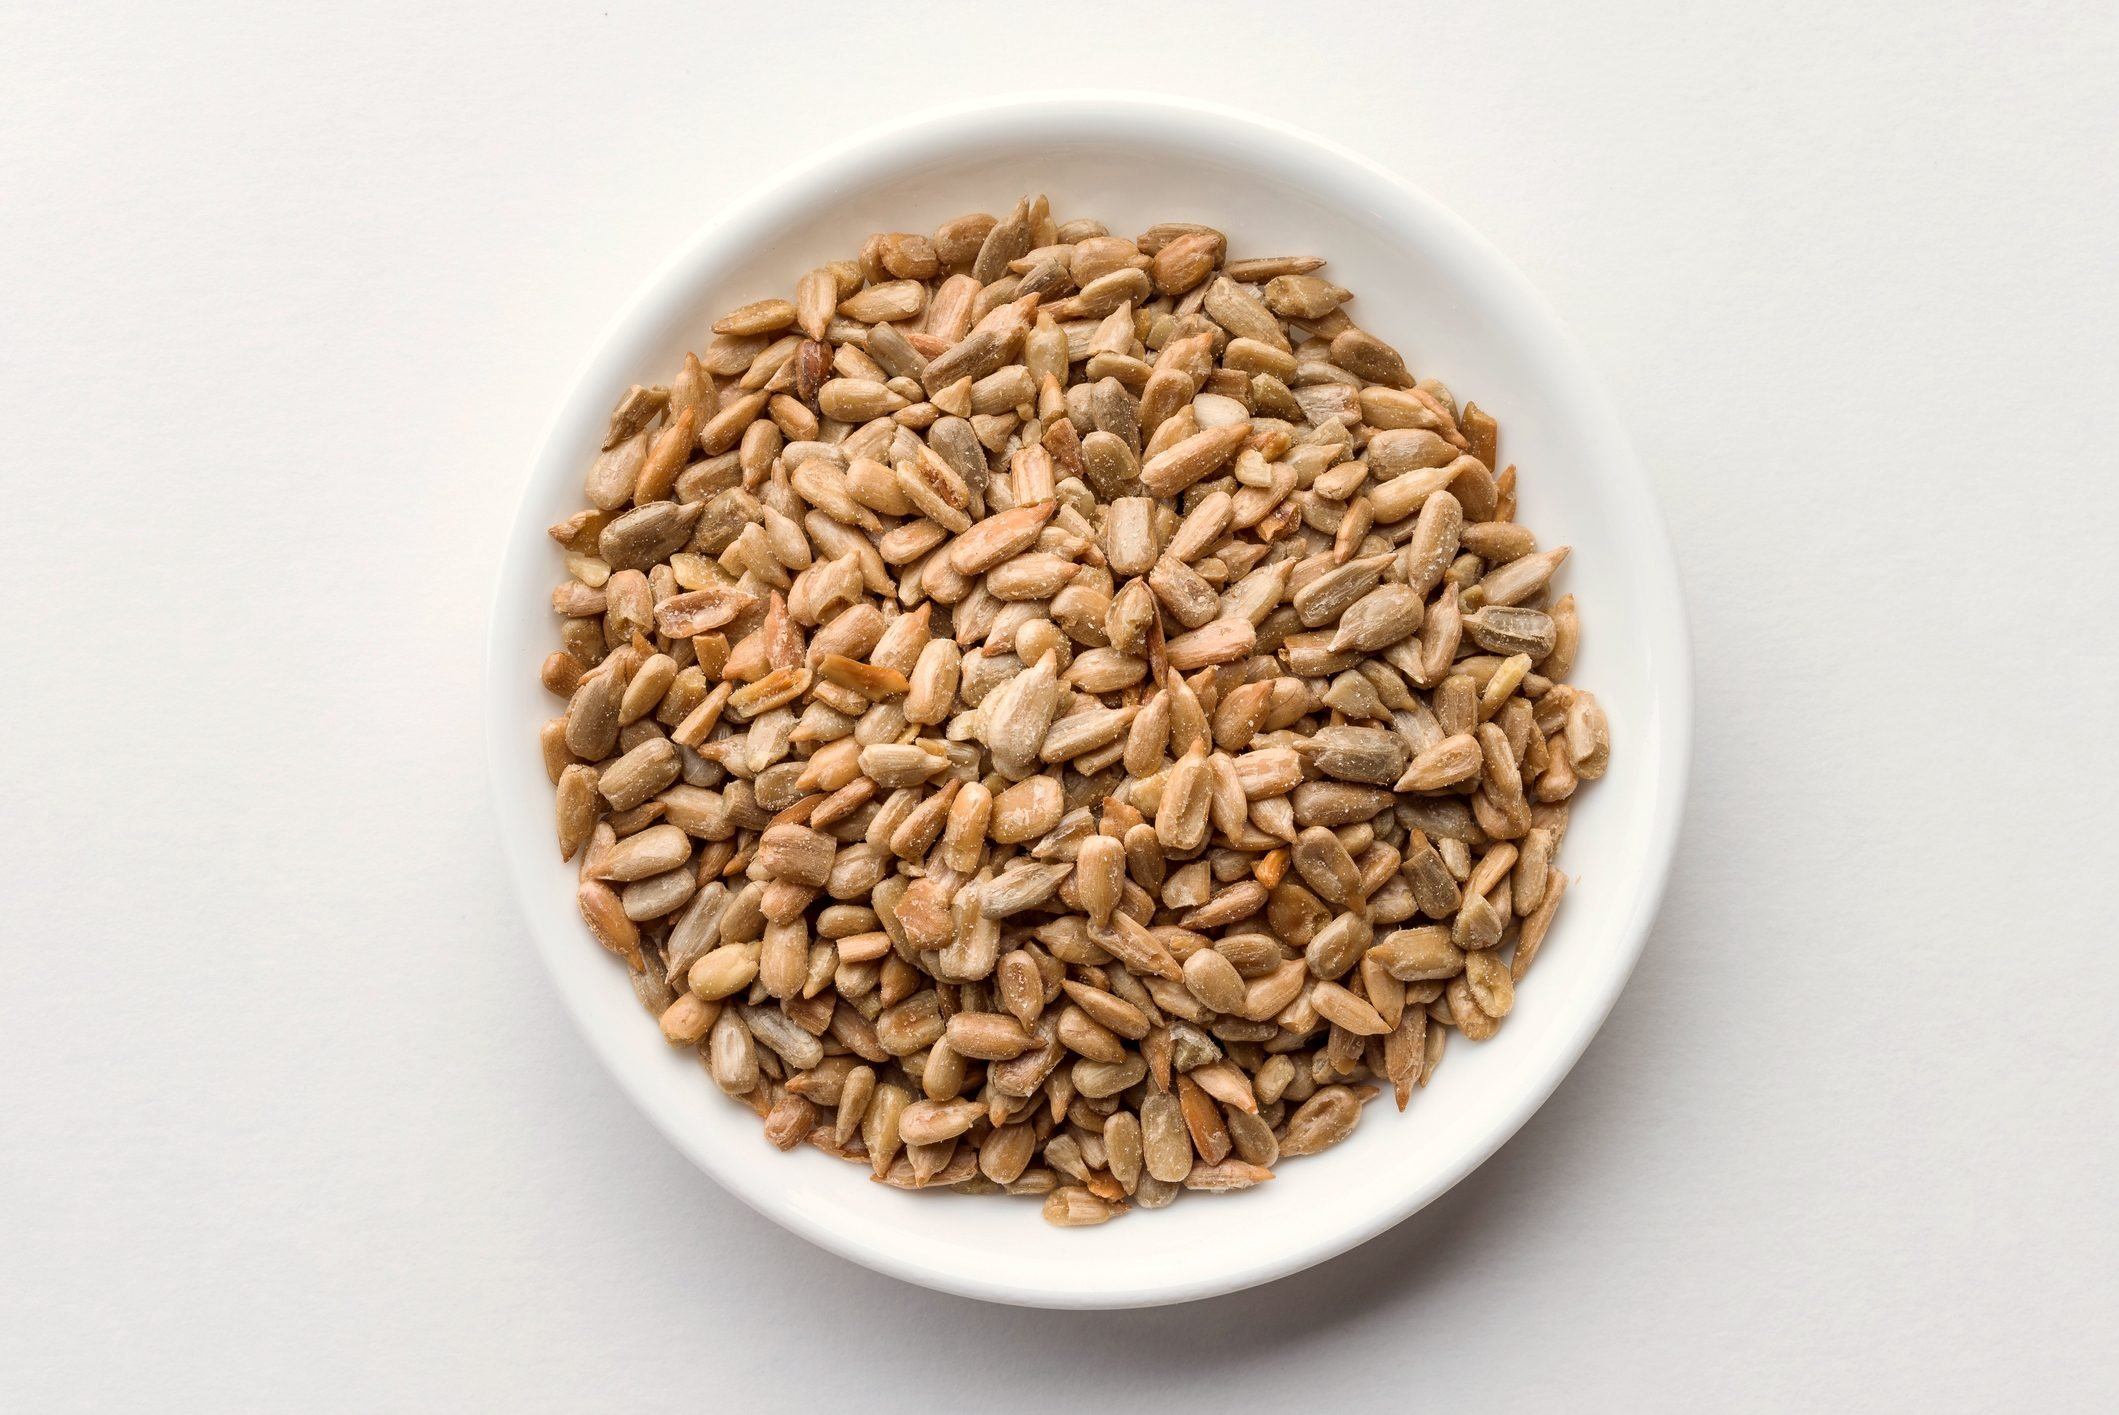 sunflower seeds in bowl shot from above